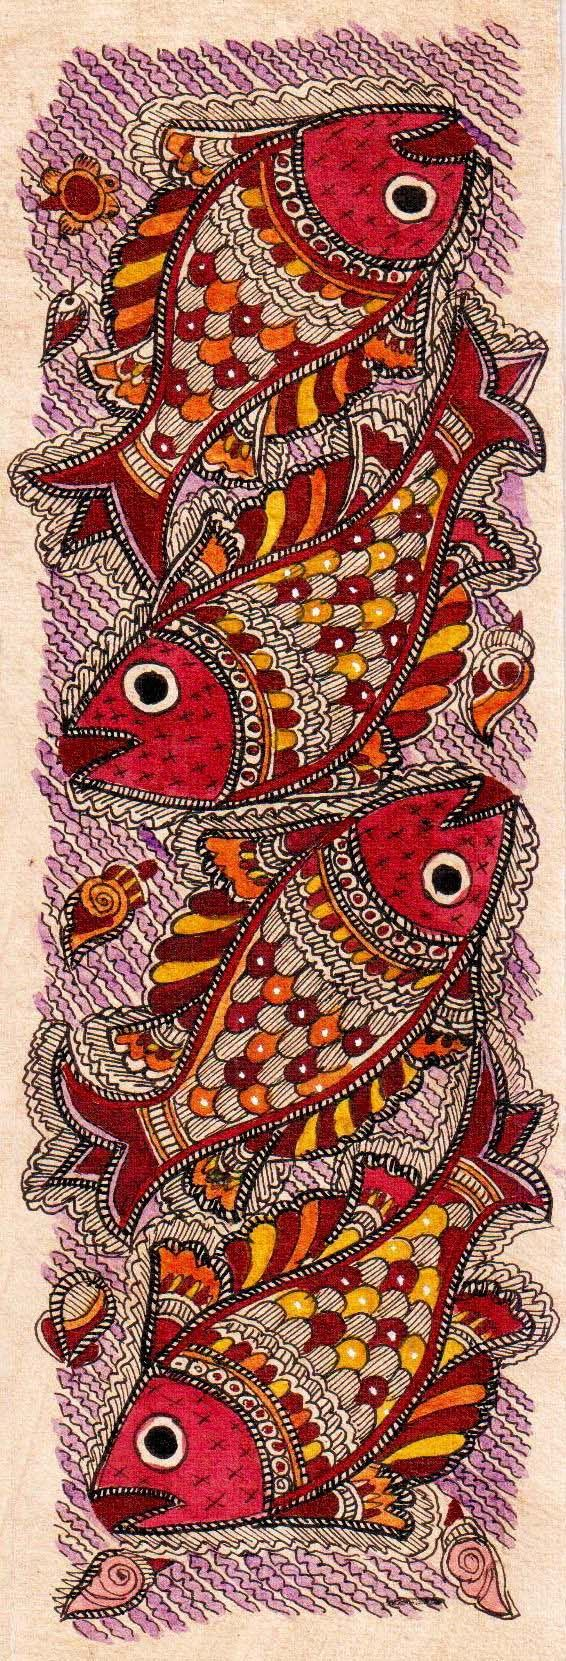 Madhubani or Mithila Paintings are said to have originated during the period of Ramayana, when King Janaka commissioned artists to do paintings during the wedding of his daughter, Sita to Lord Ram. The paintings usually depicted nature and Hindu religious motifs, the themes generally revolve around Hindu deities.http://handicrafts.exoticabazaar.com/view/4847-7-fish126.html